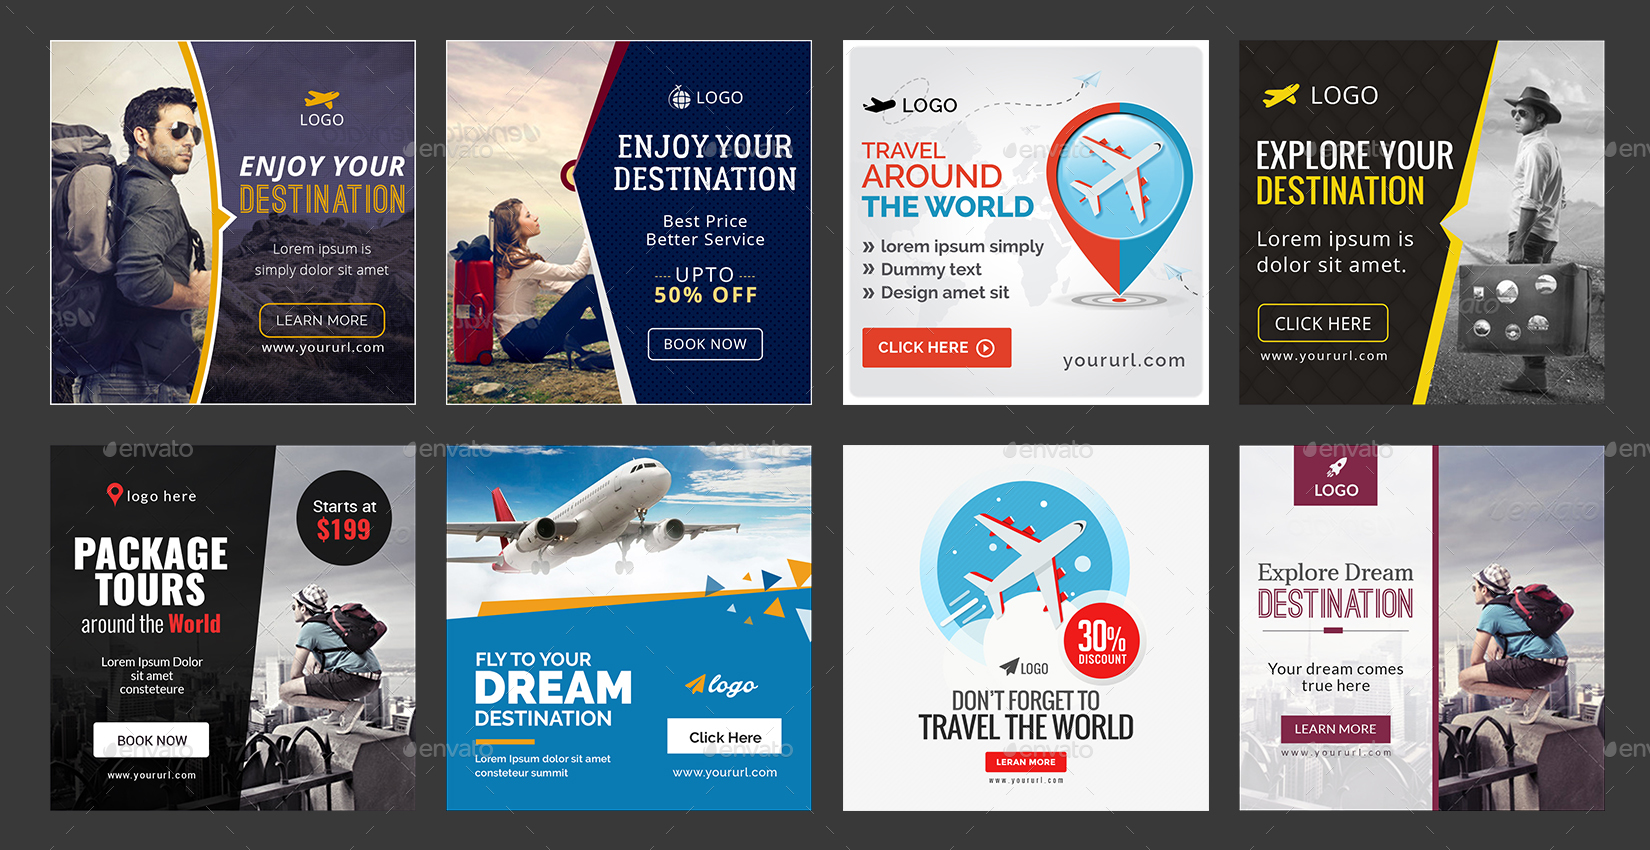 Travel Instagram Templates - 25 Designs by doto | GraphicRiver